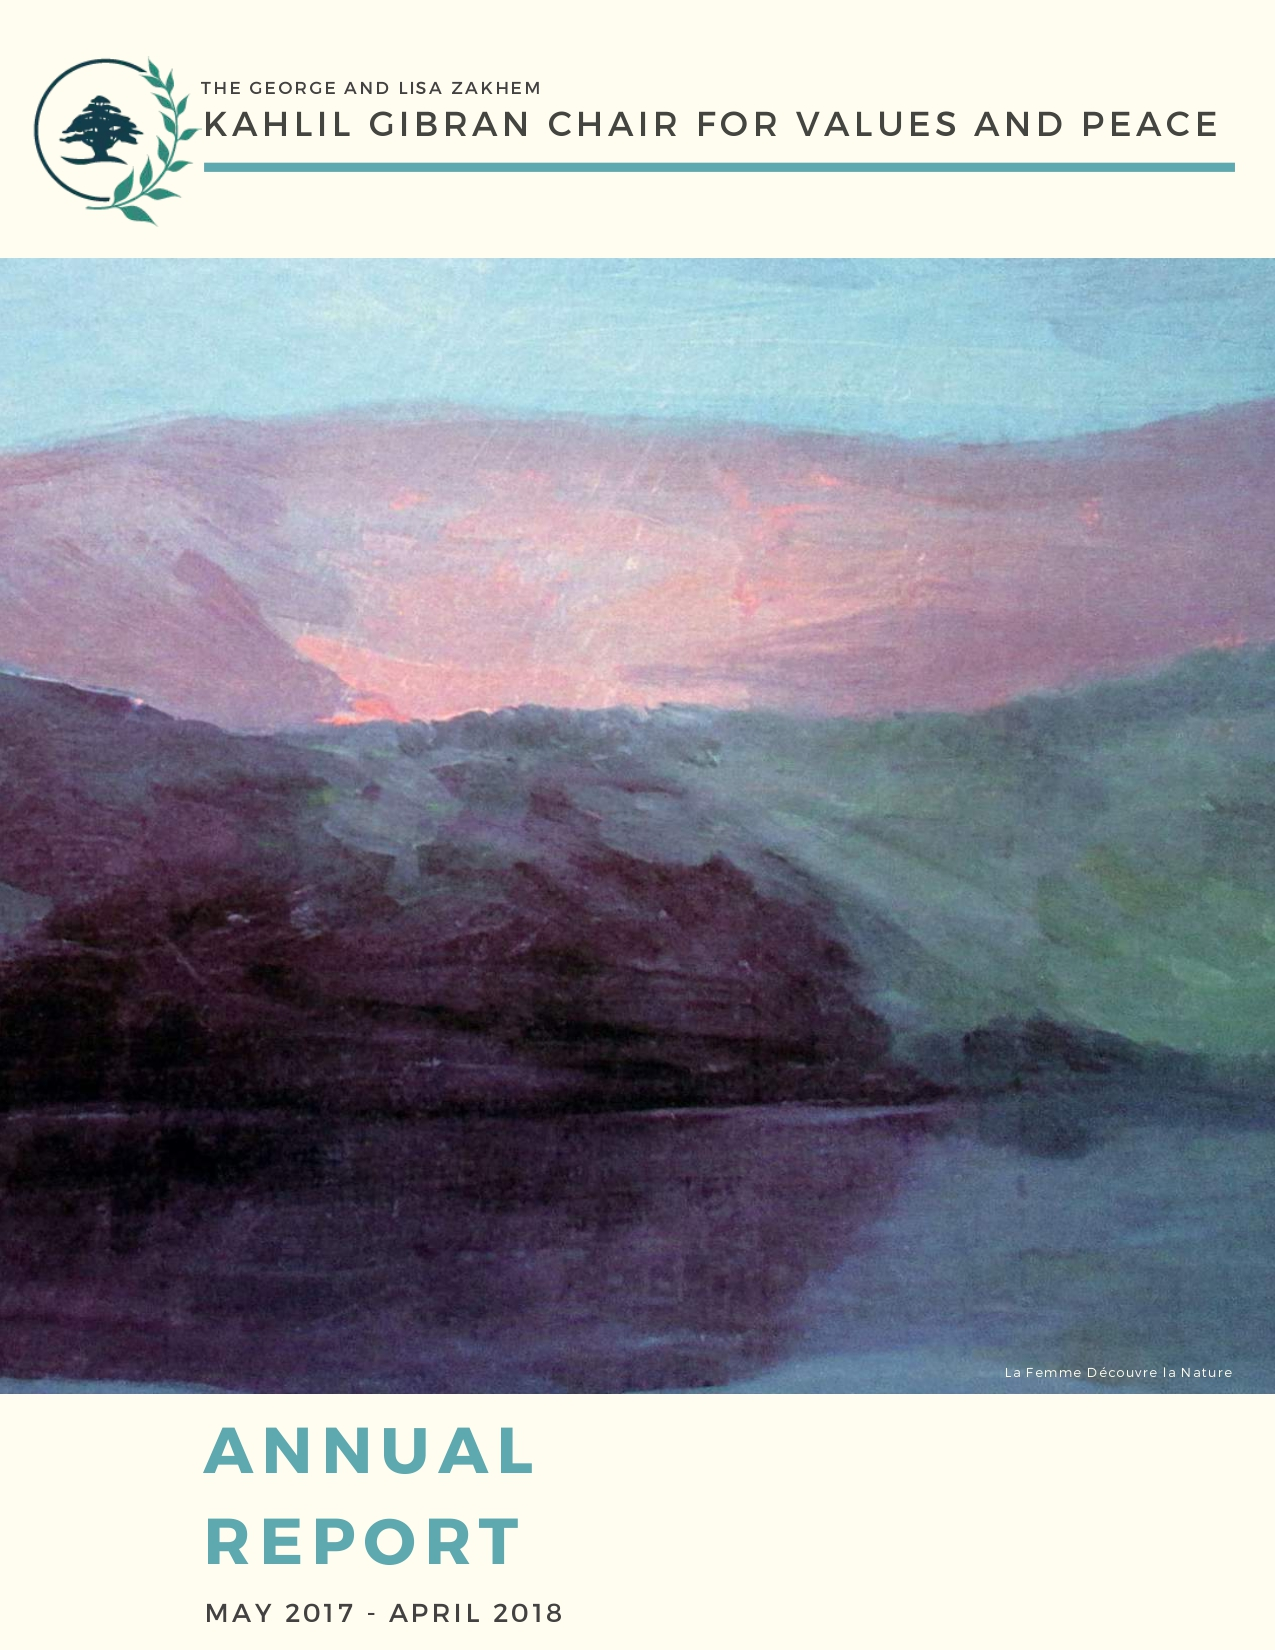 Annual Report, The George and Lisa Zakhem Kahlil Gibran Chair for Values and Peace, May 2017 - April 2018.